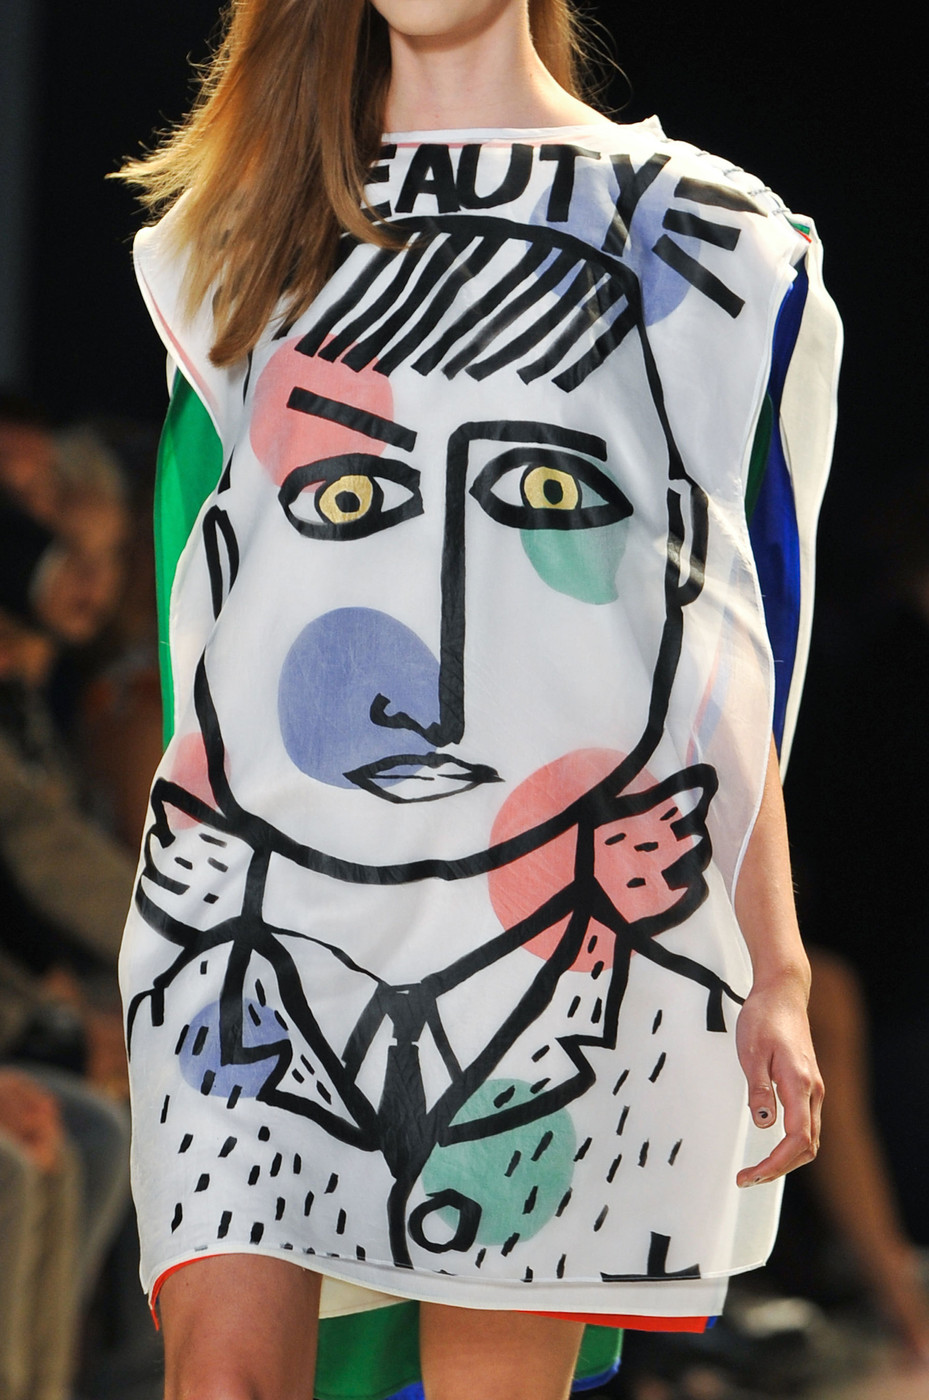 Jean charles de castelbajac at paris fashion week spring 2014 livingly - Jean charles de castelbajac ...